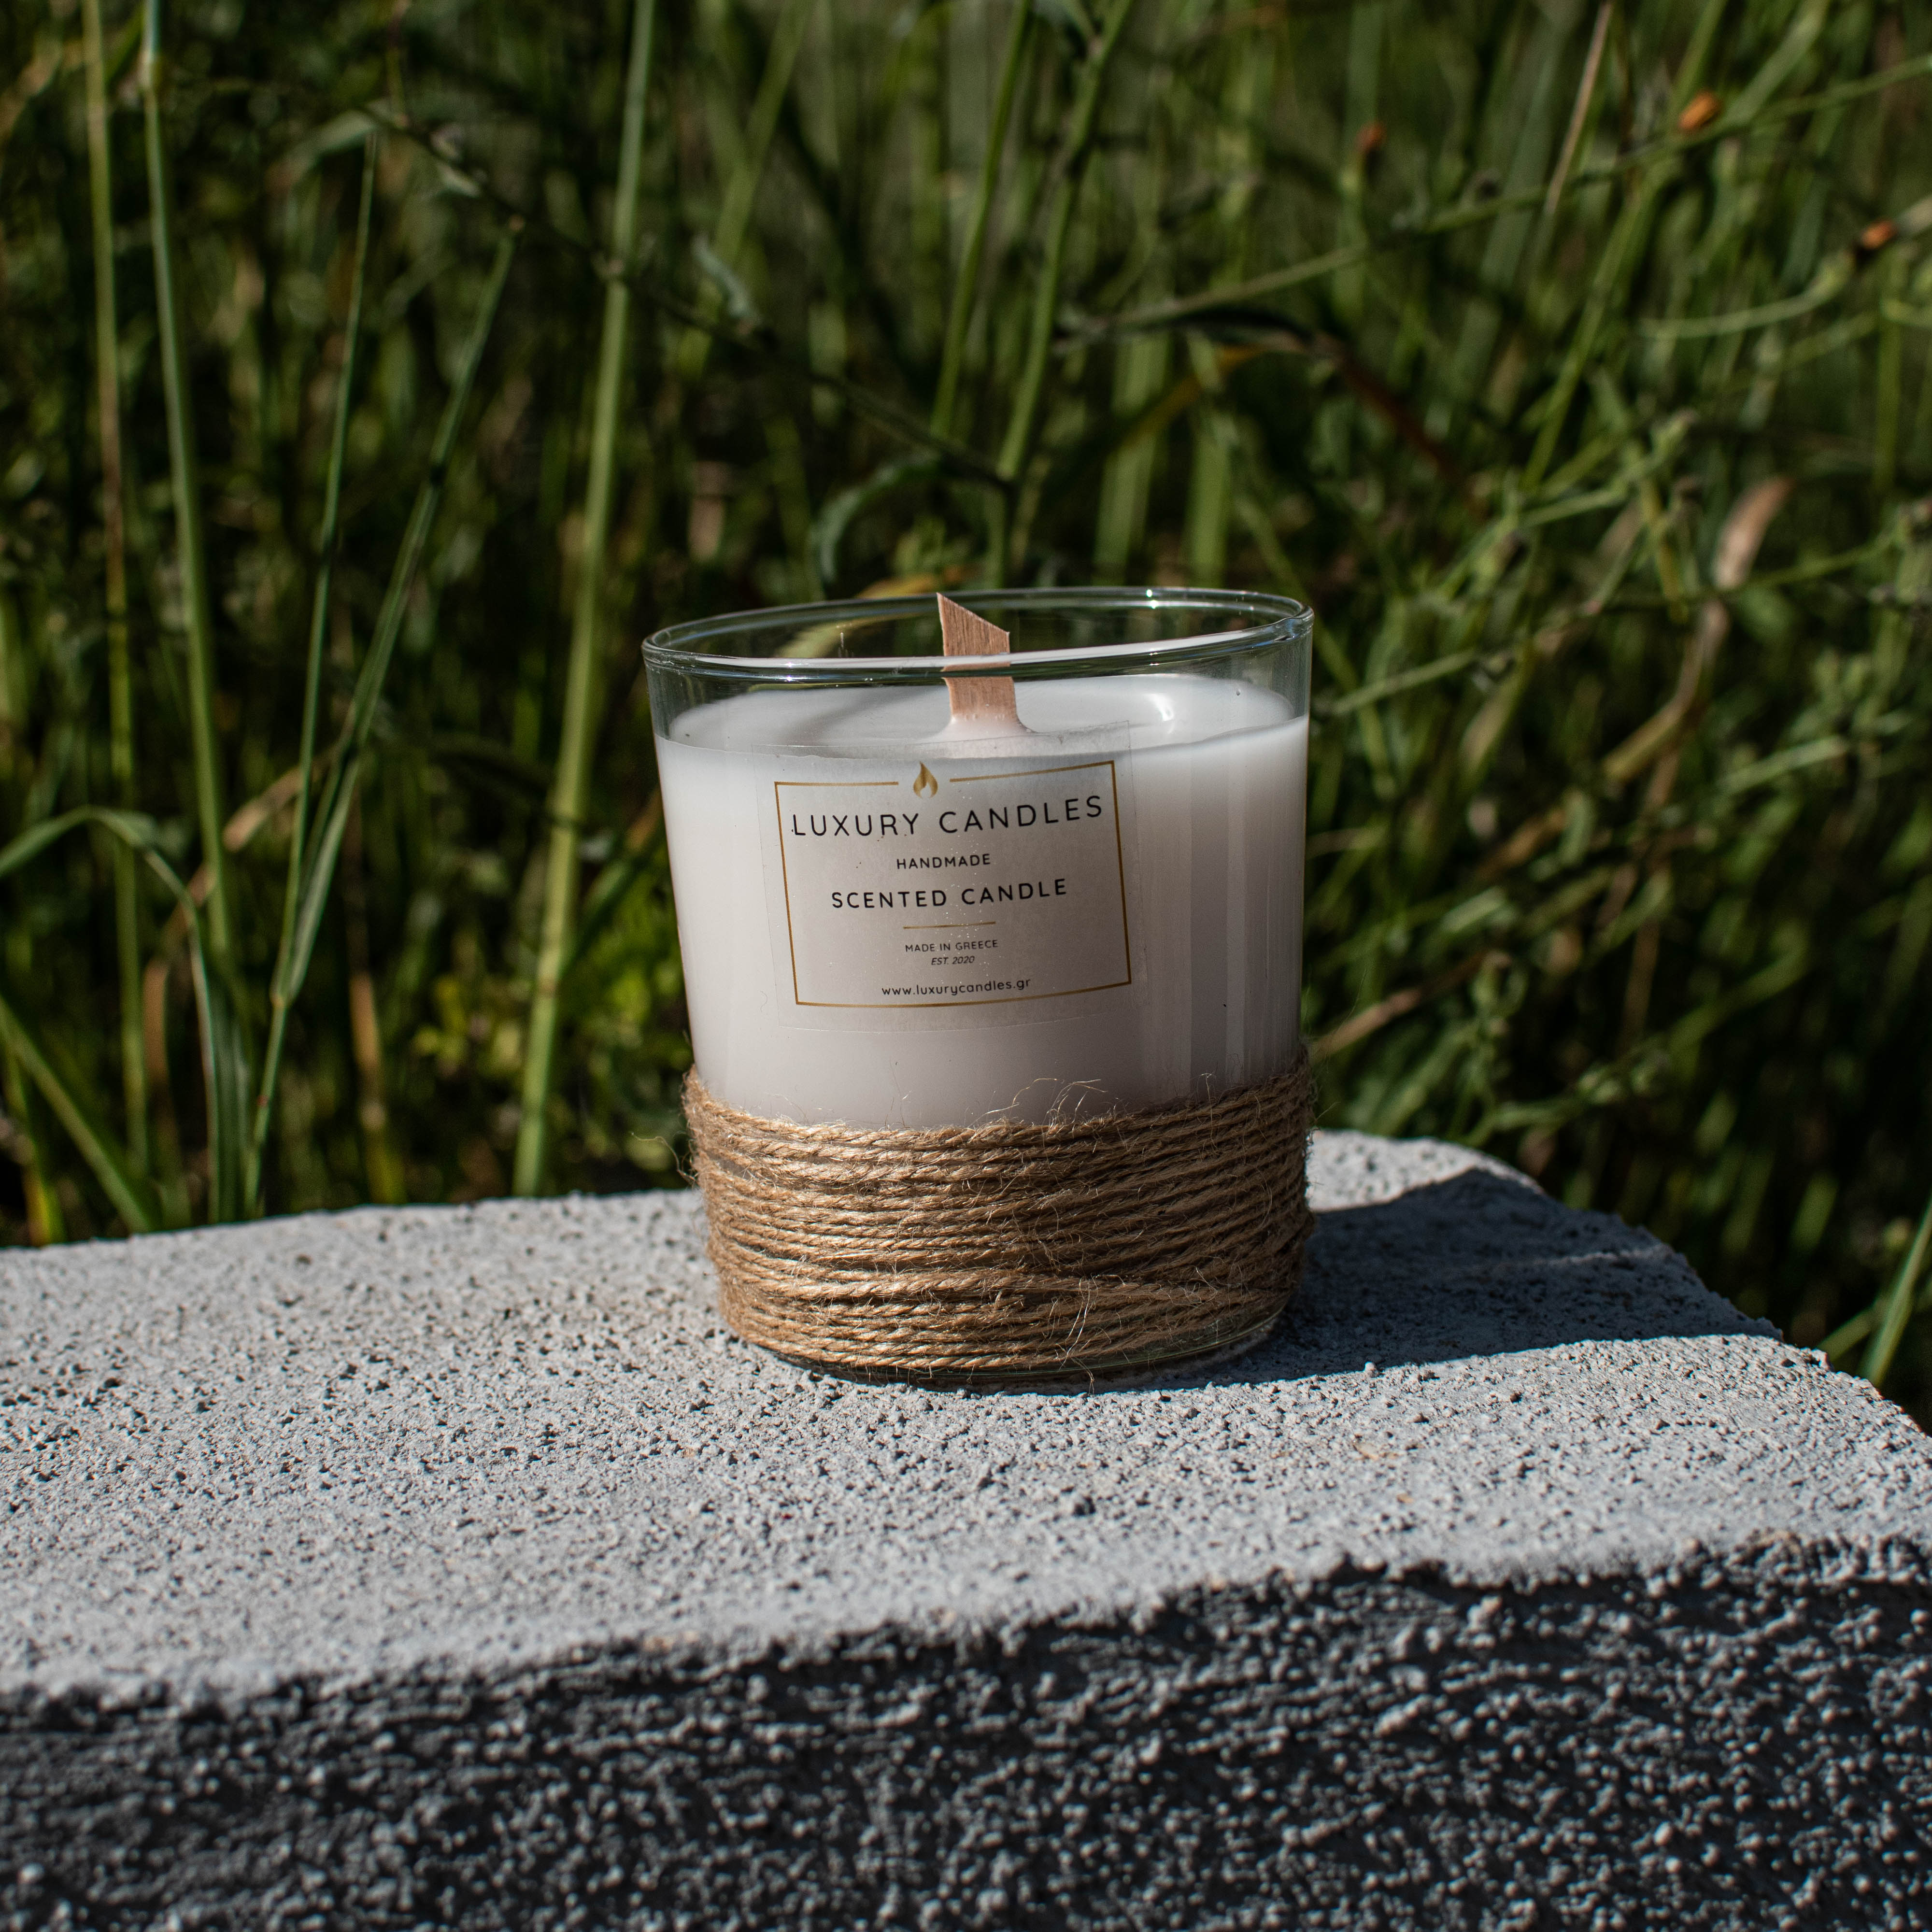 Wood Wick Candle in glass jar